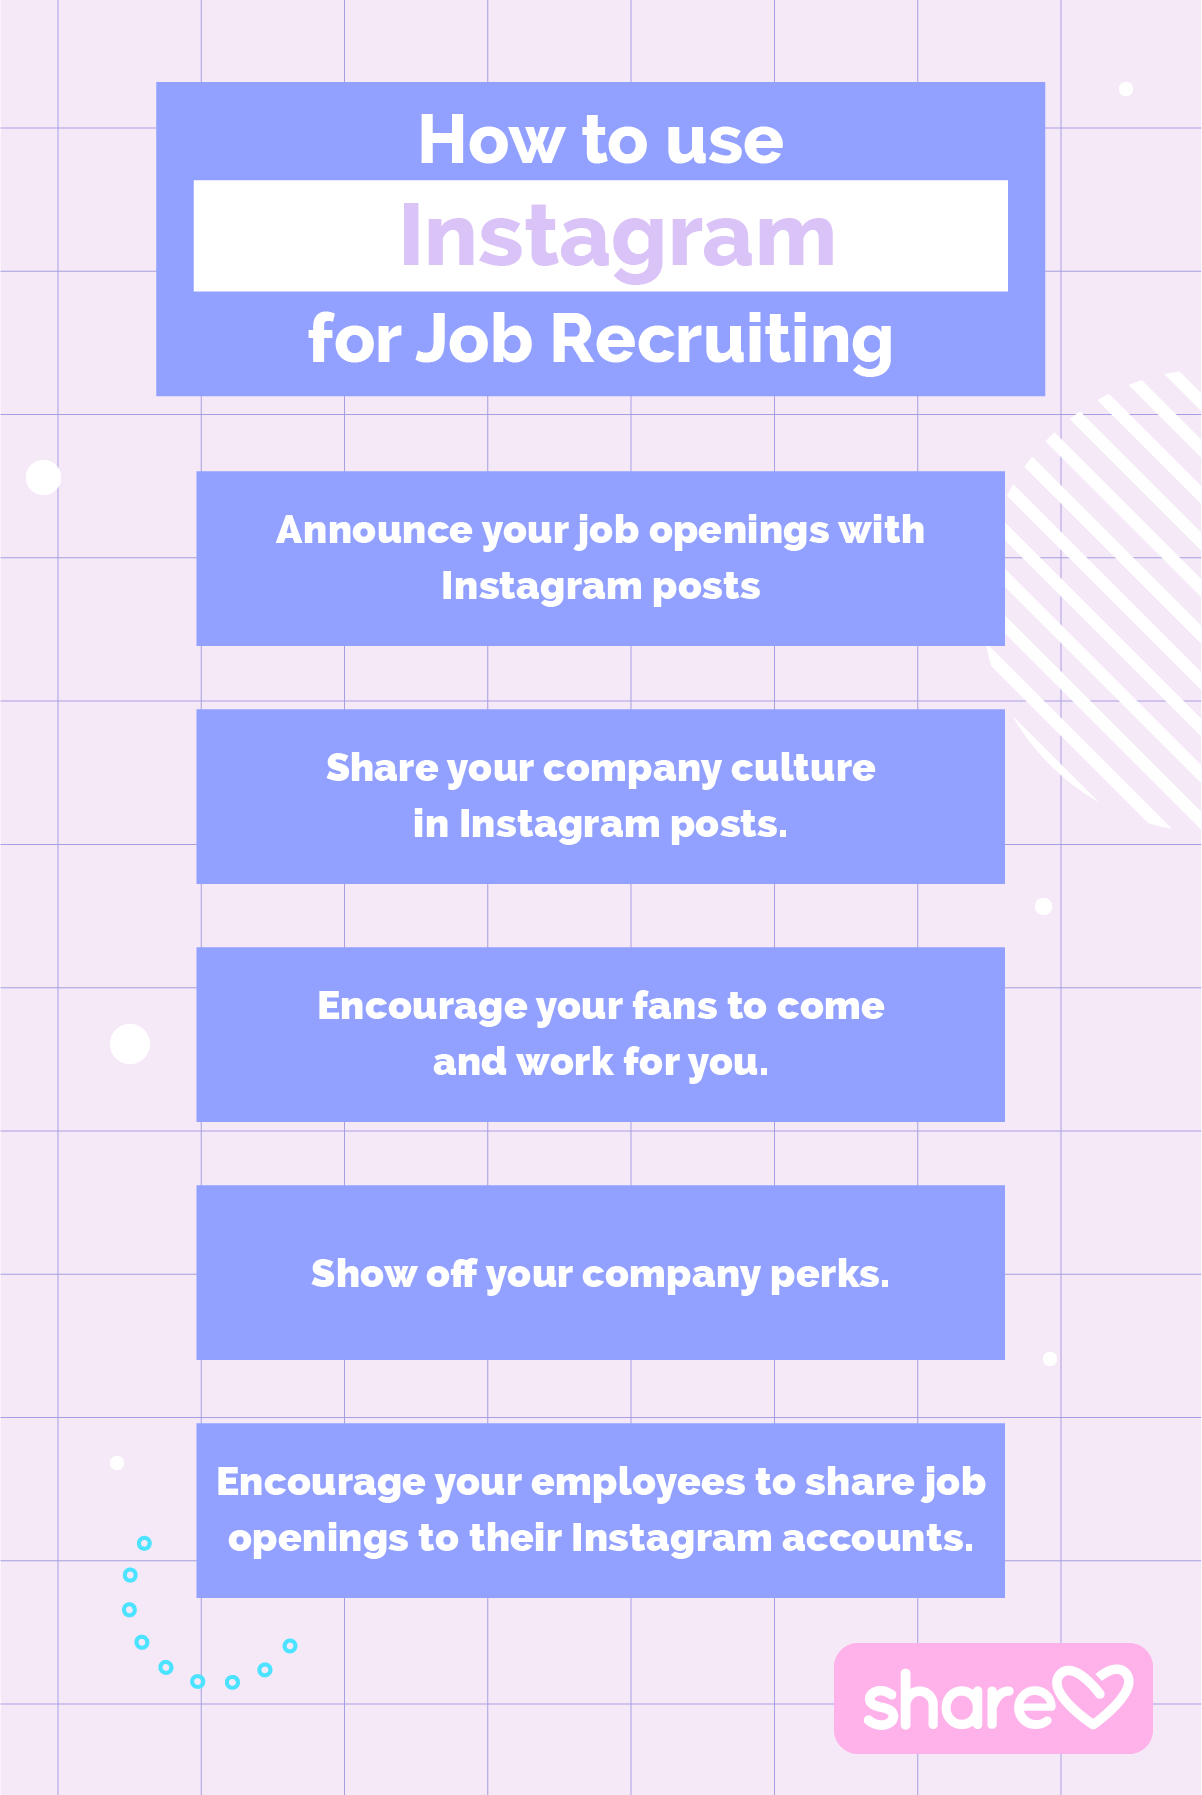 How to Use Instagram For Job Recruiting